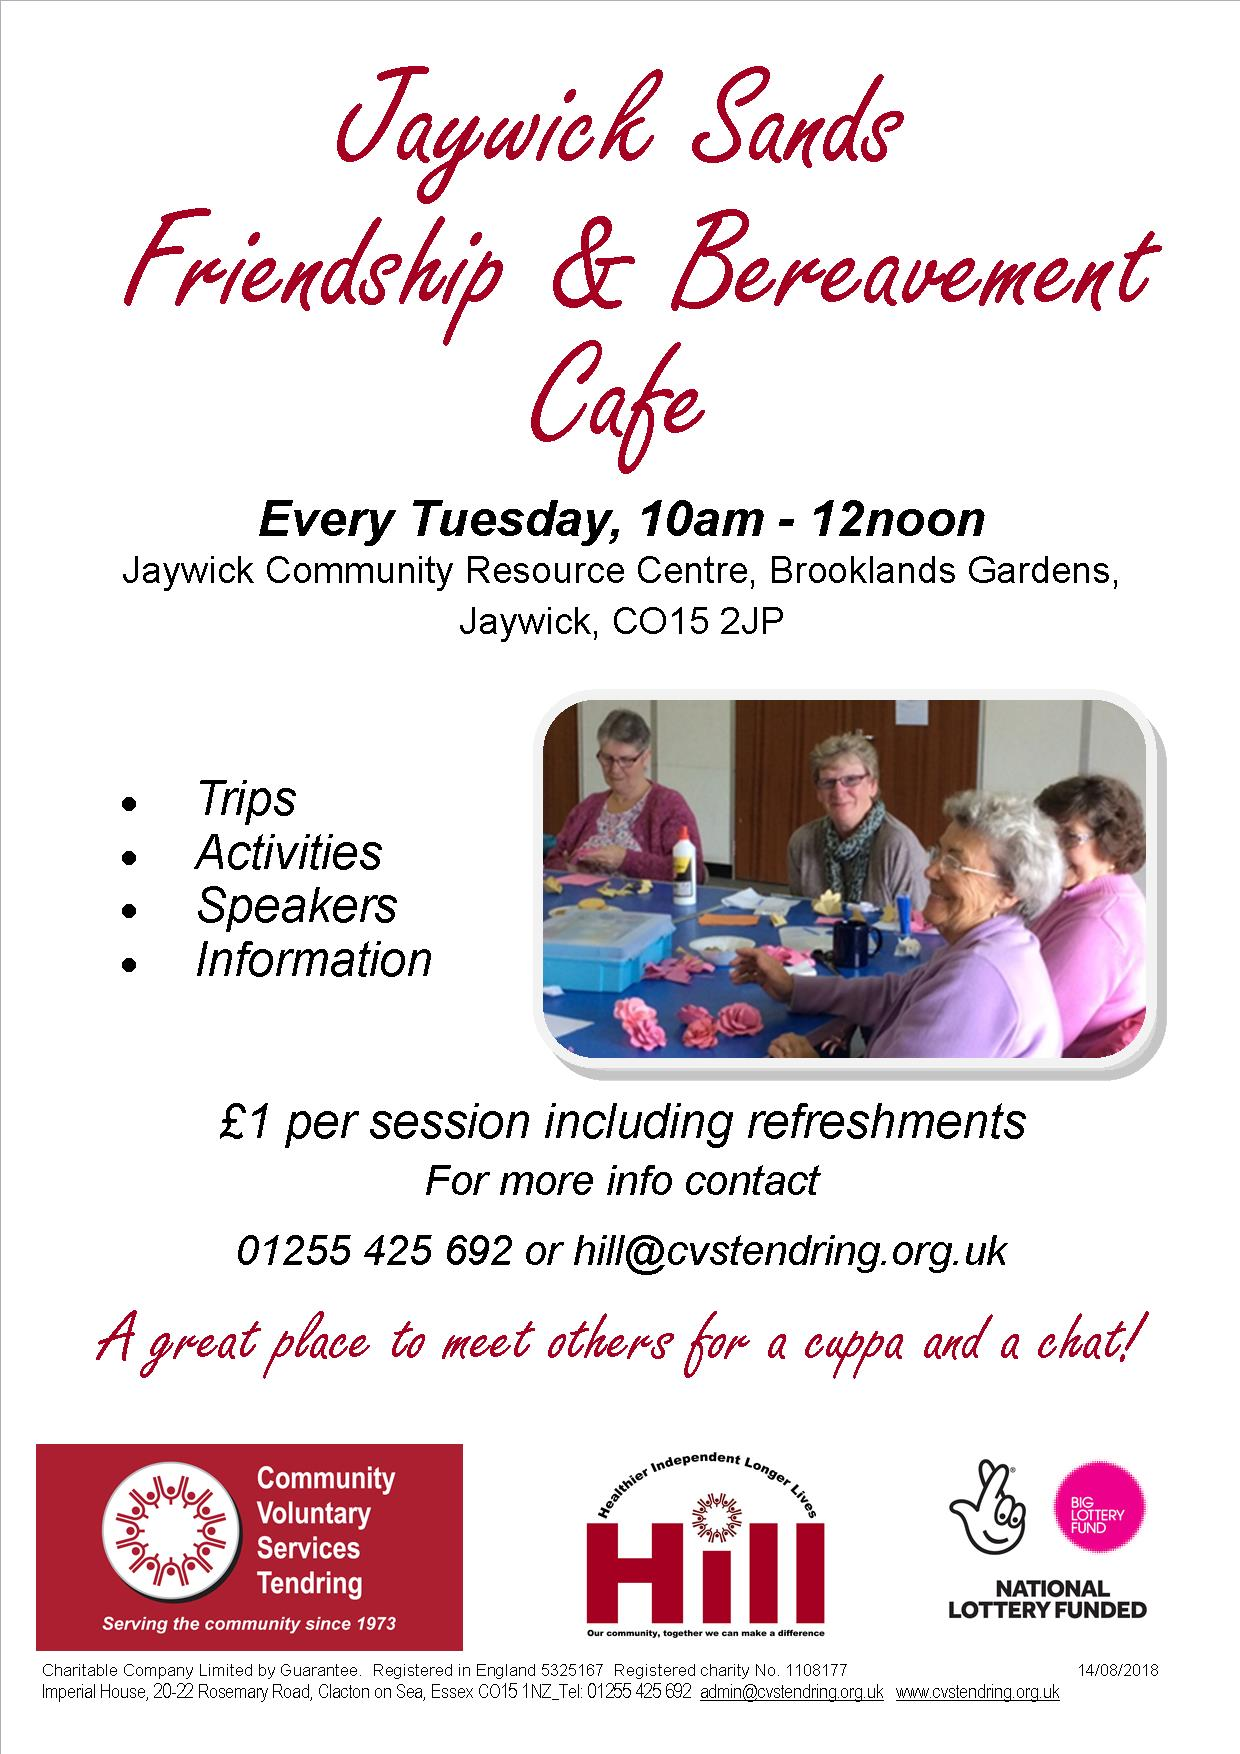 Jaywick Sands Friendship & Bereavement Cafe